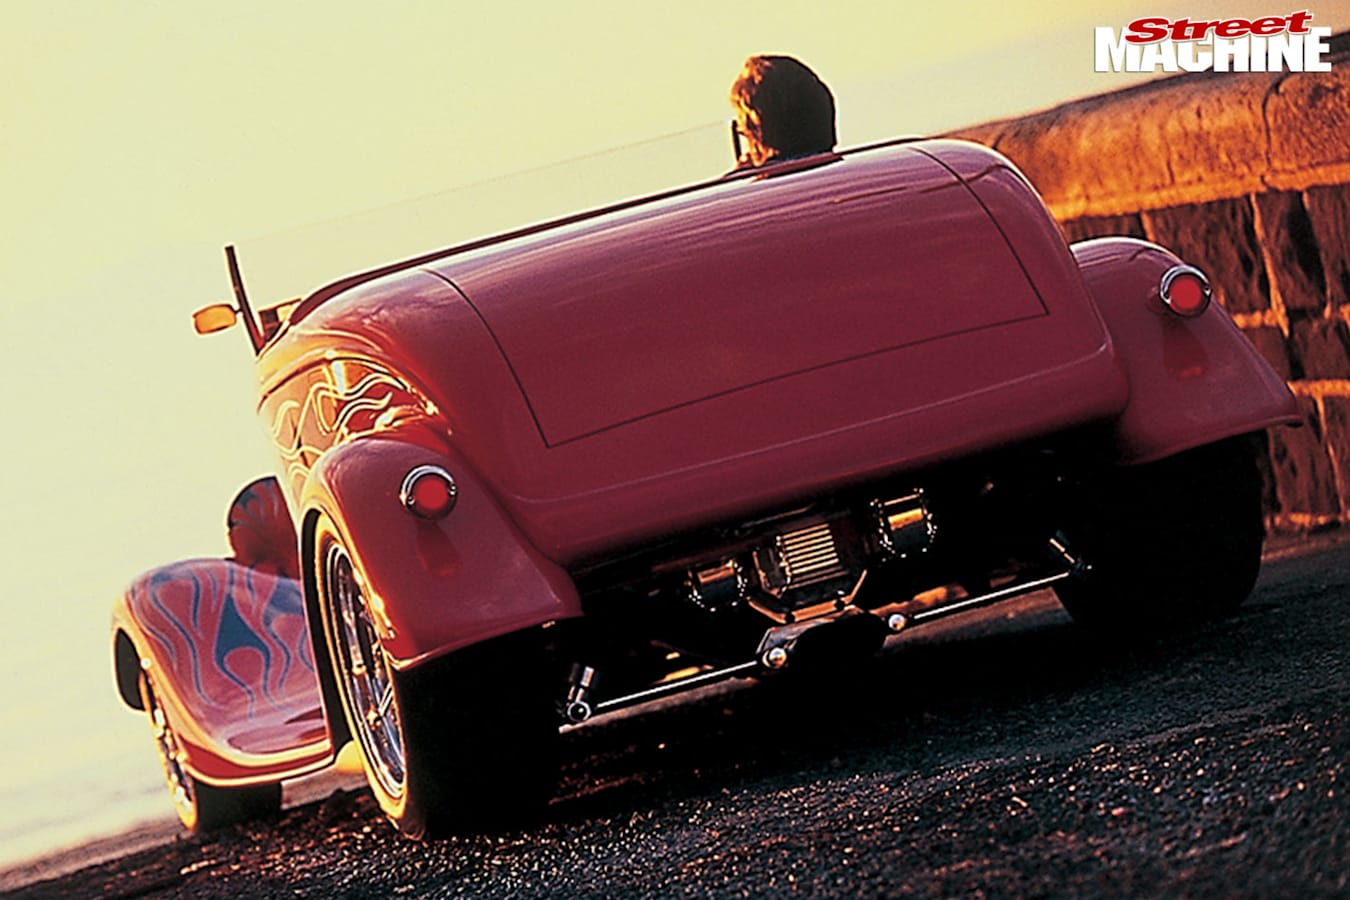 Ford Roadster rear